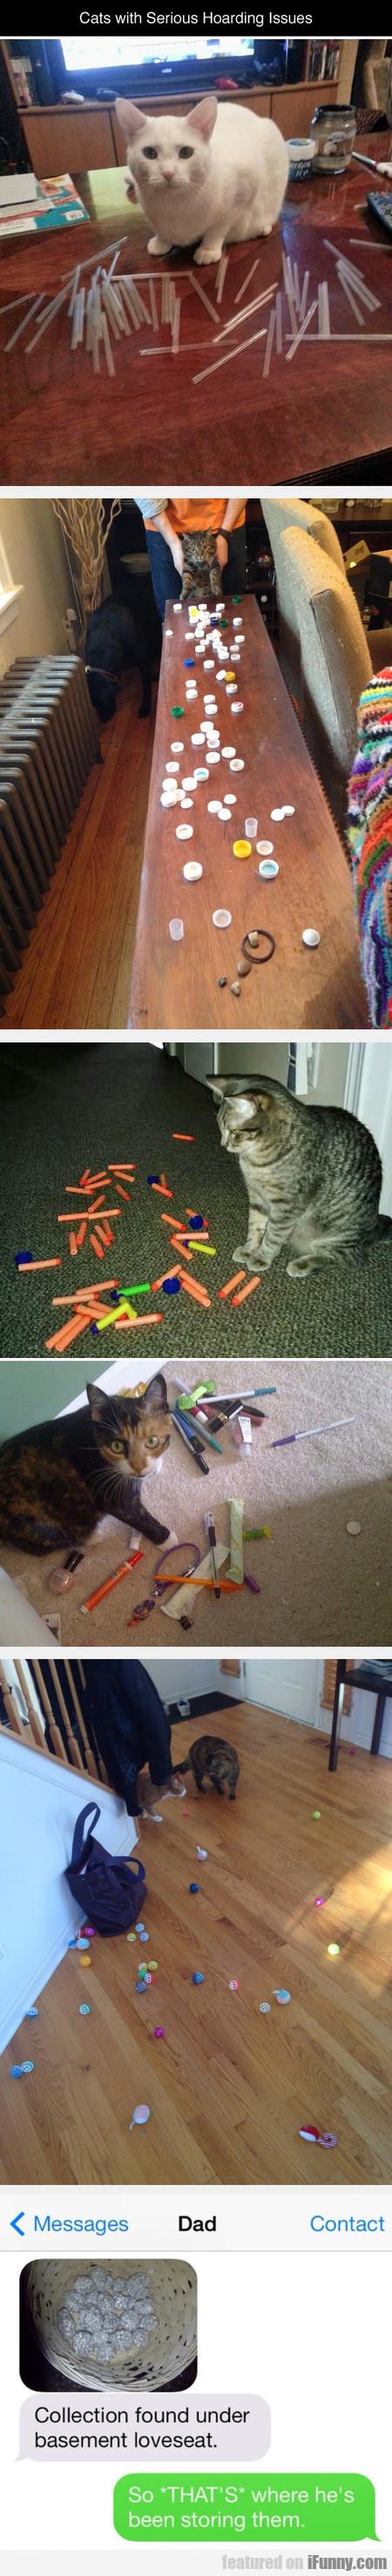 cats with serious hoarding issues